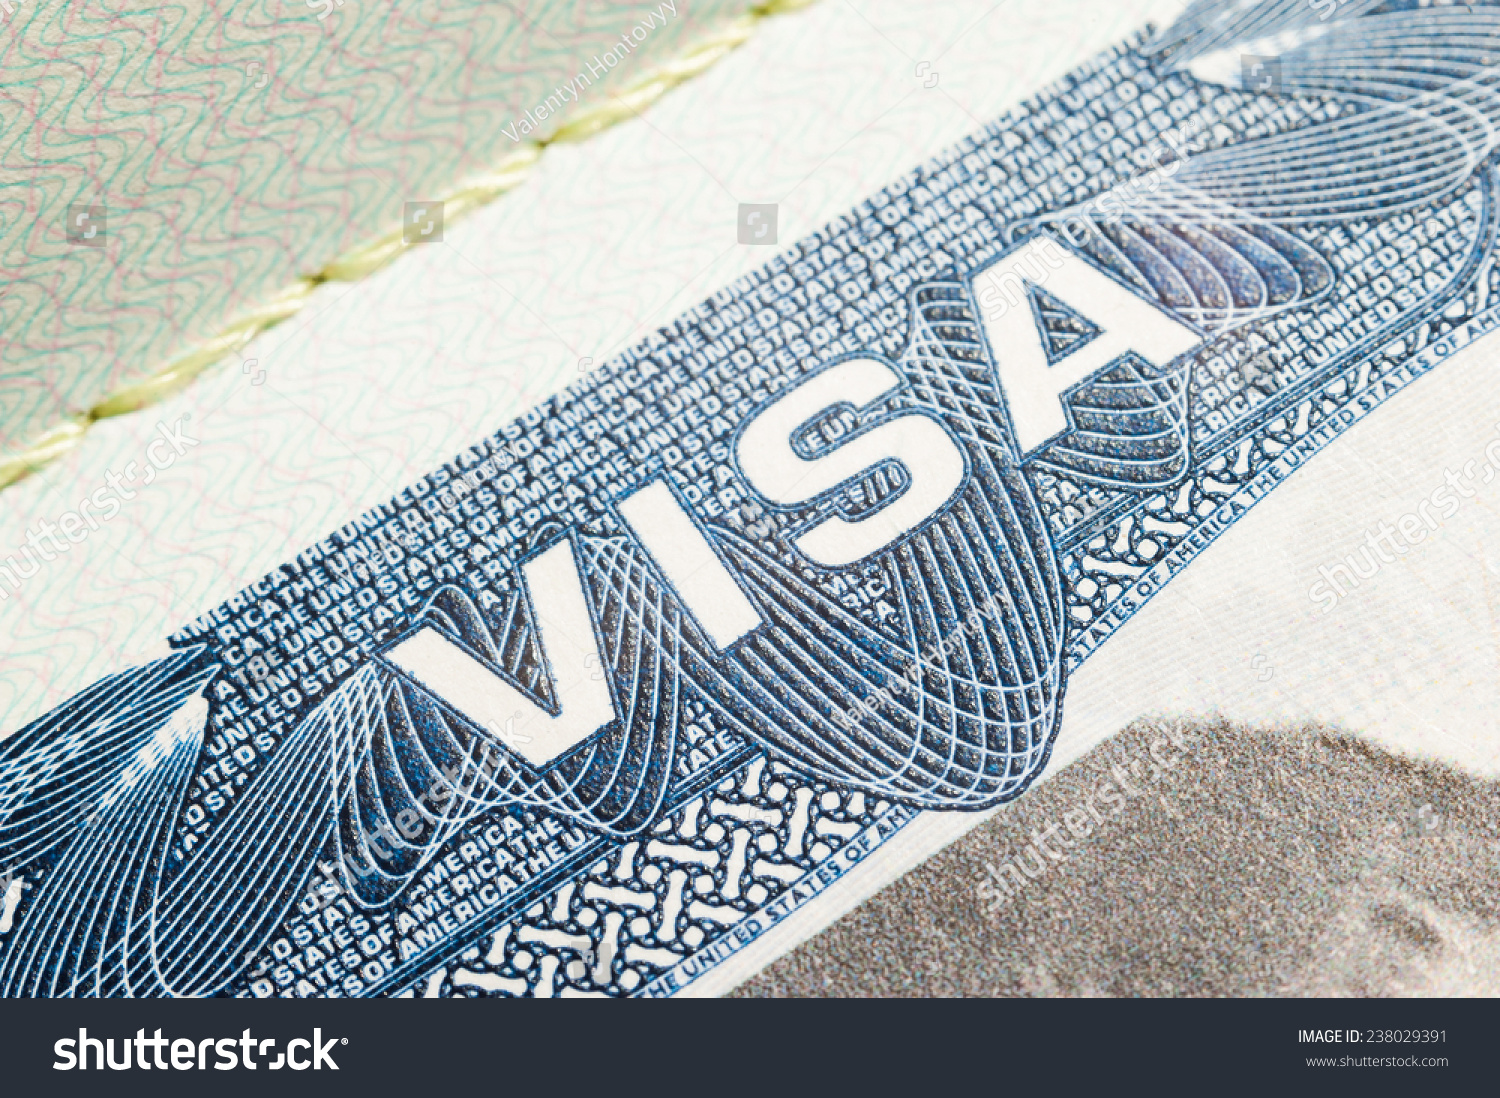 United States America Visa Travel Passport Stock Photo